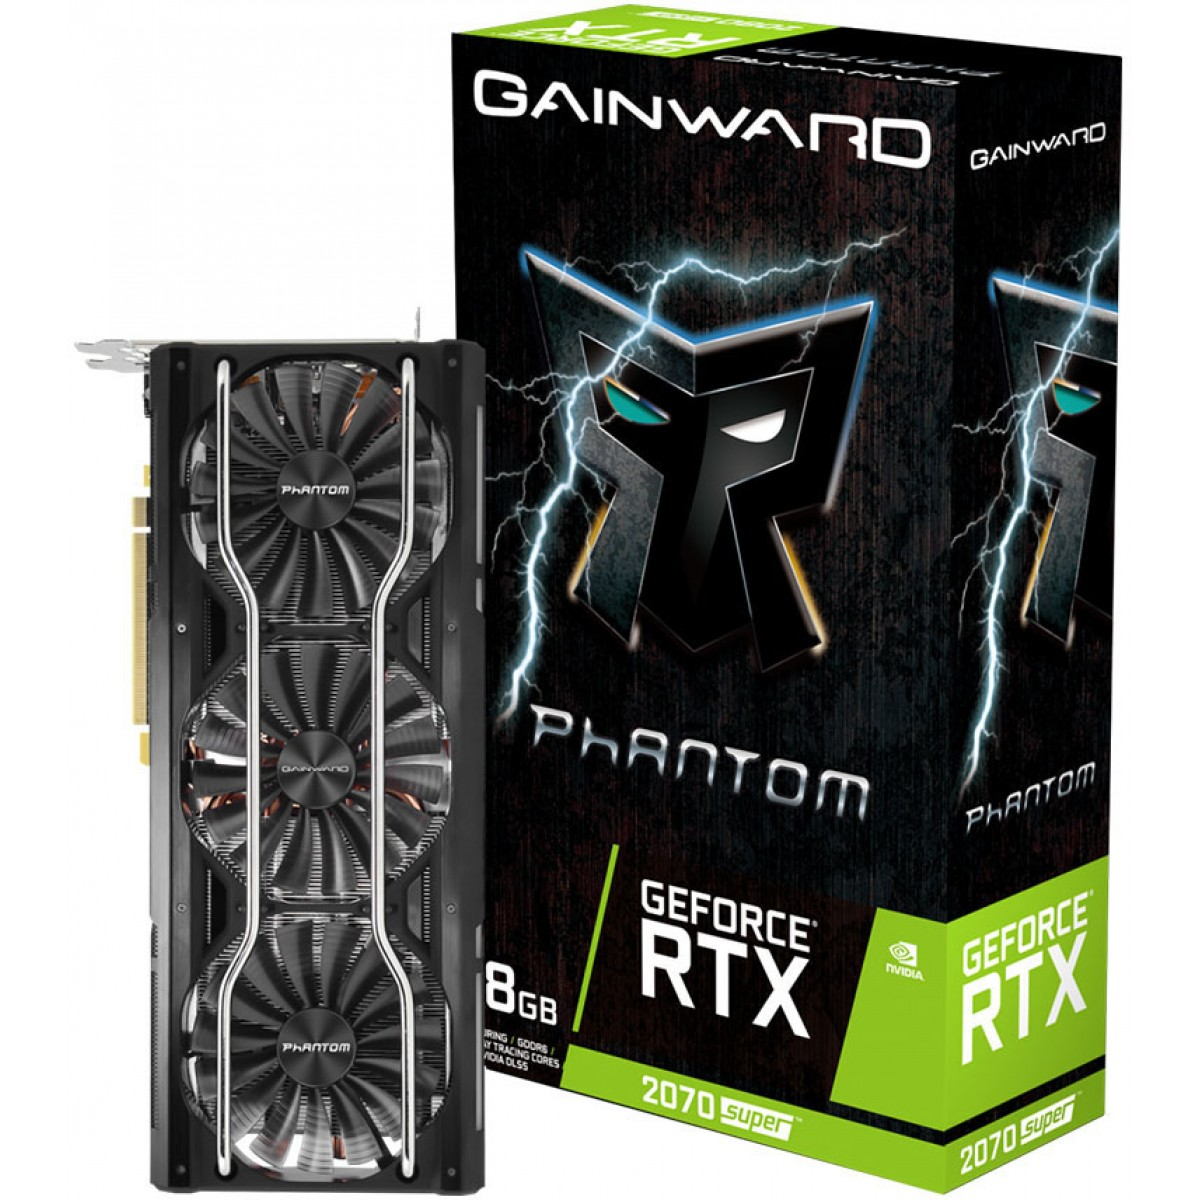 Placa de Vídeo Gainward GeForce RTX 2070 Super Phanton, 8GB GDDR6, 256Bit, NE6207S019P2-1040P